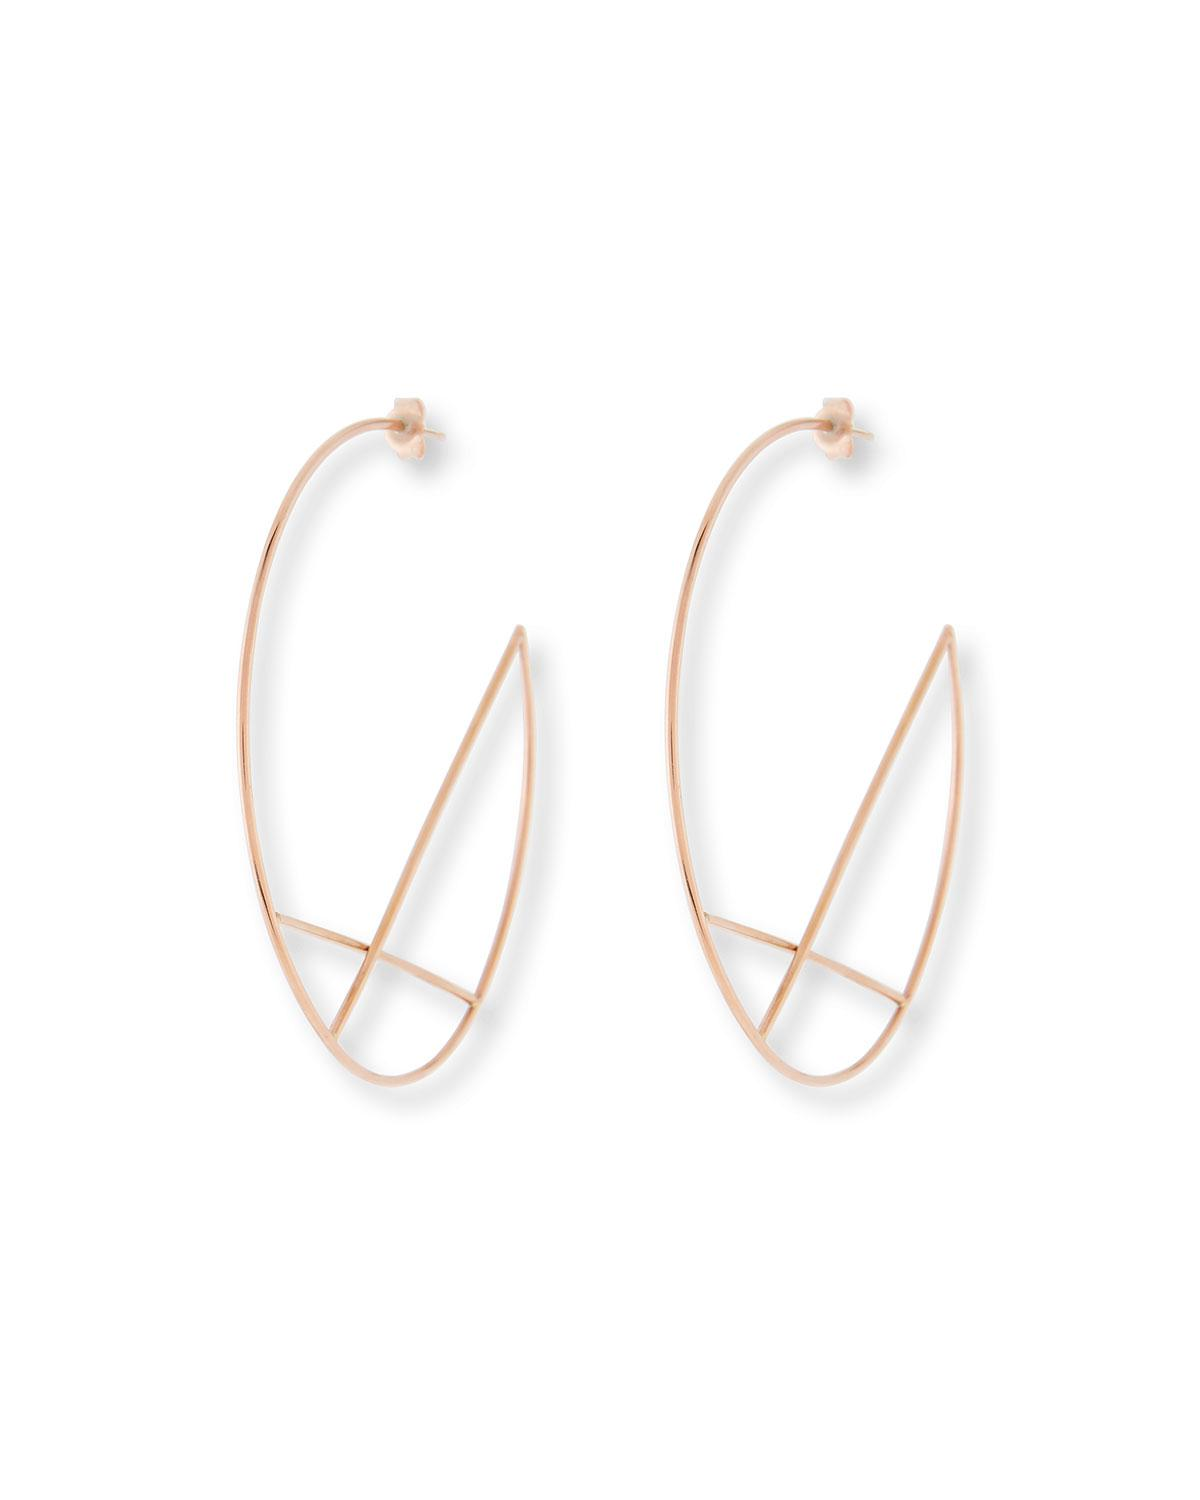 Lana Jewelry 14k Wire Diagonal Cross Eclipse Hoop Earrings 1ytj6